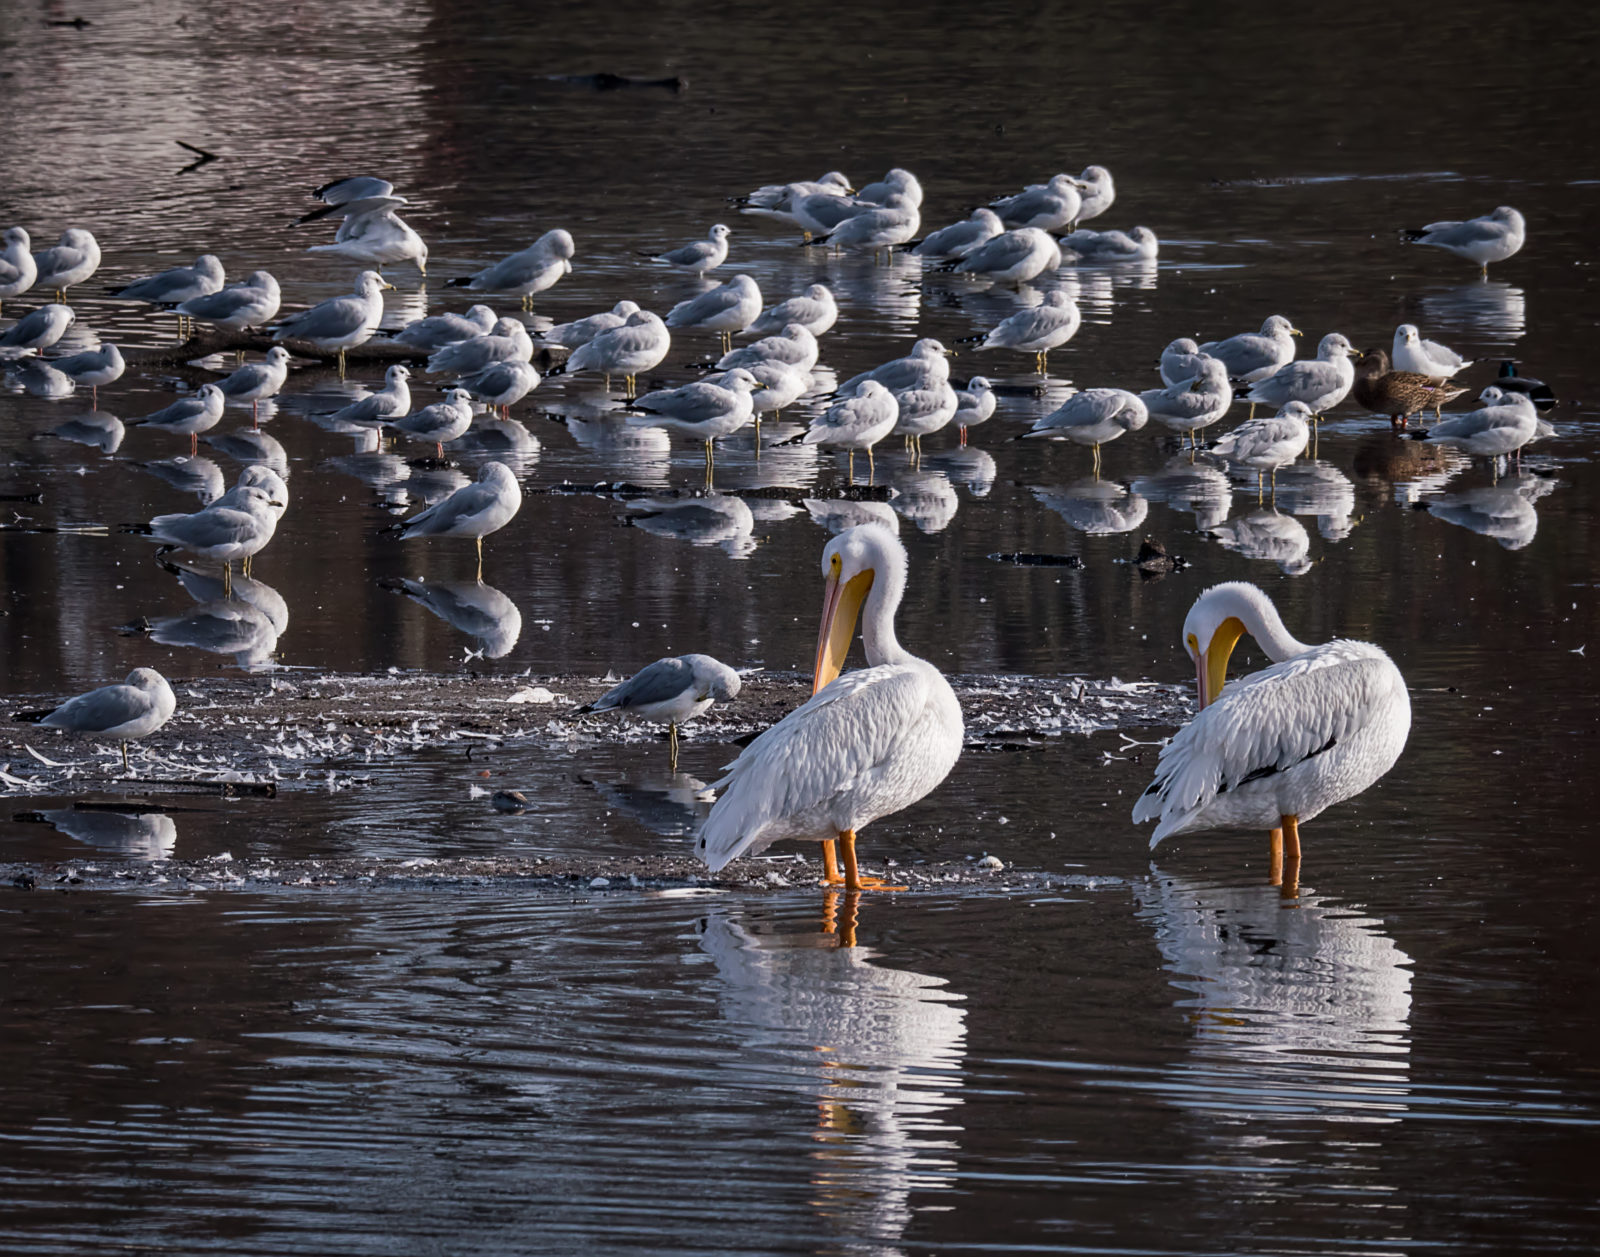 White Pelicans and Gulls